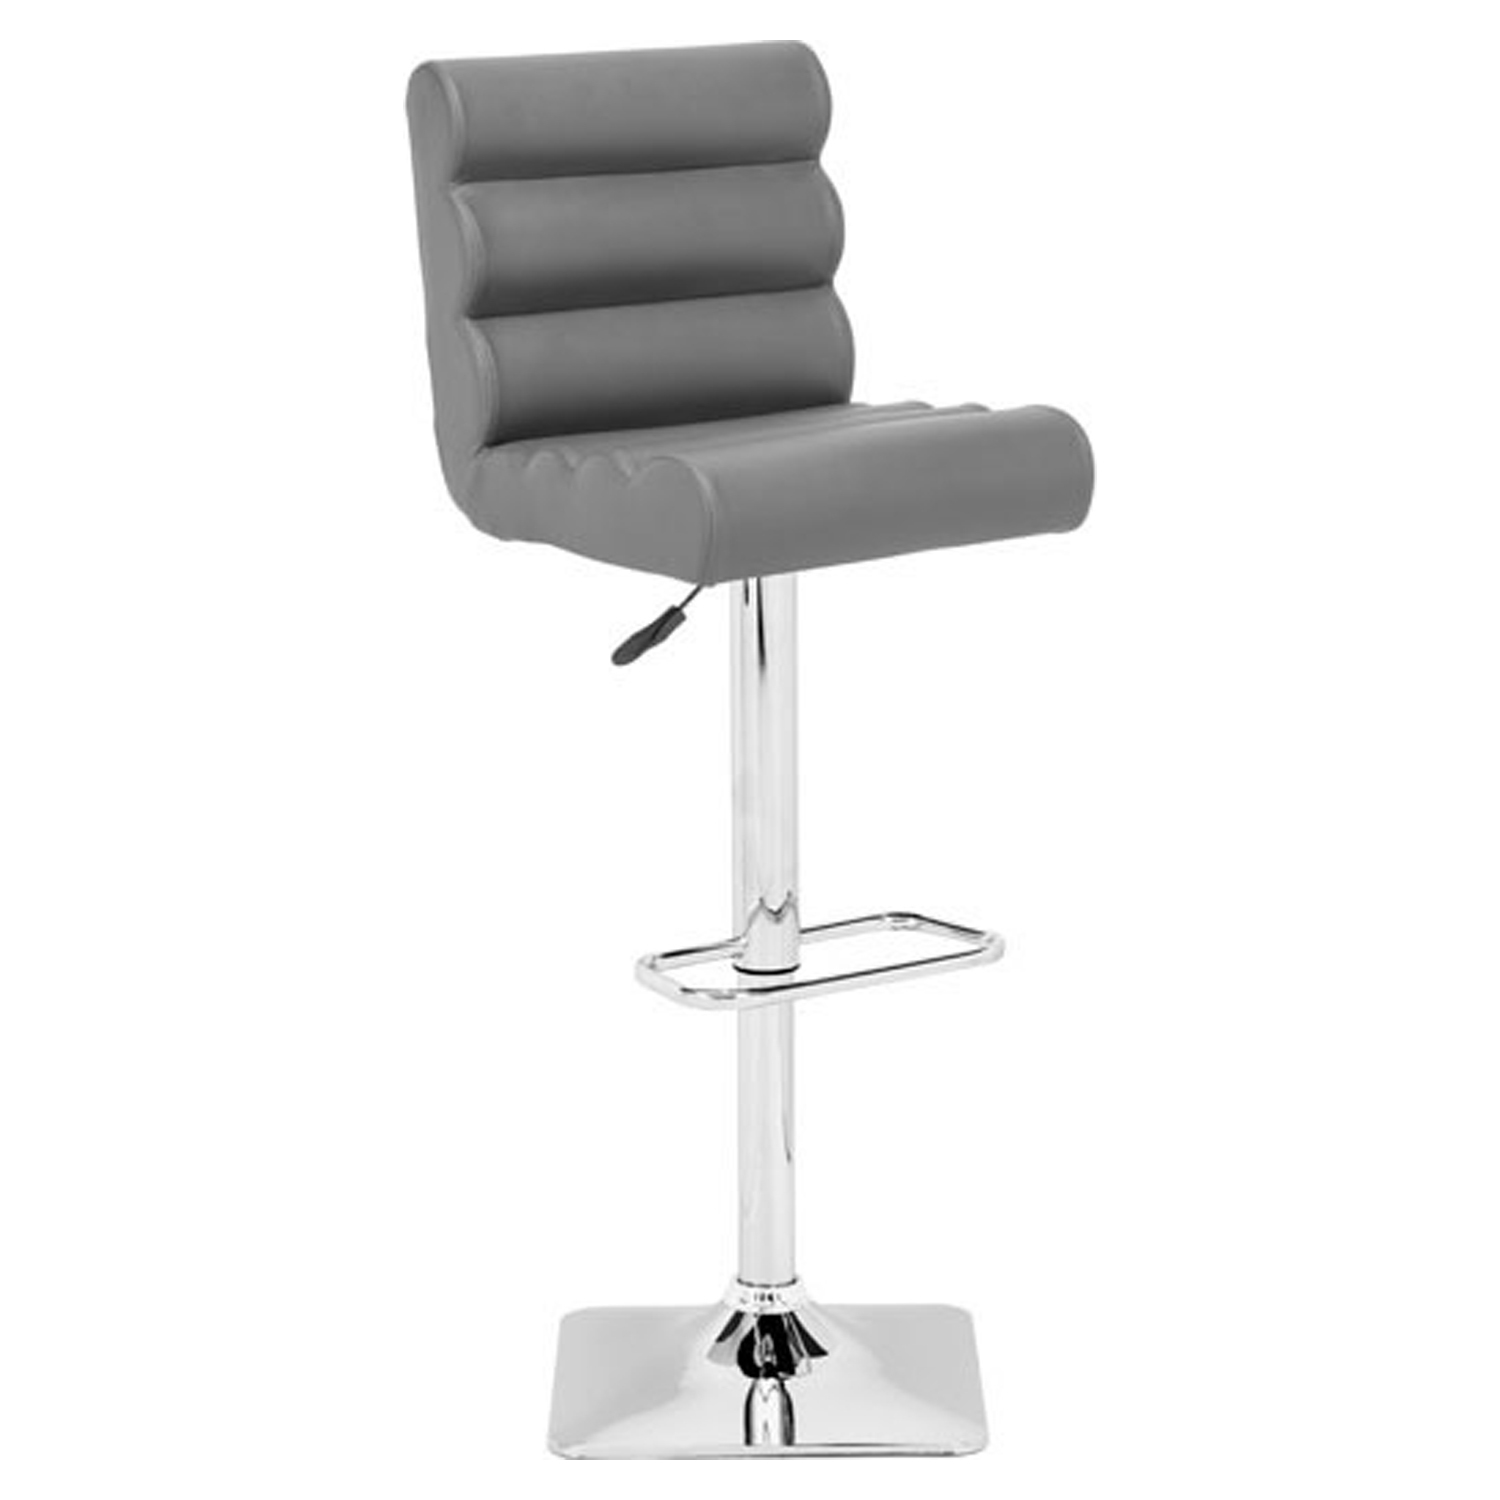 Nitro Bar Chair - Adjustable, Gray